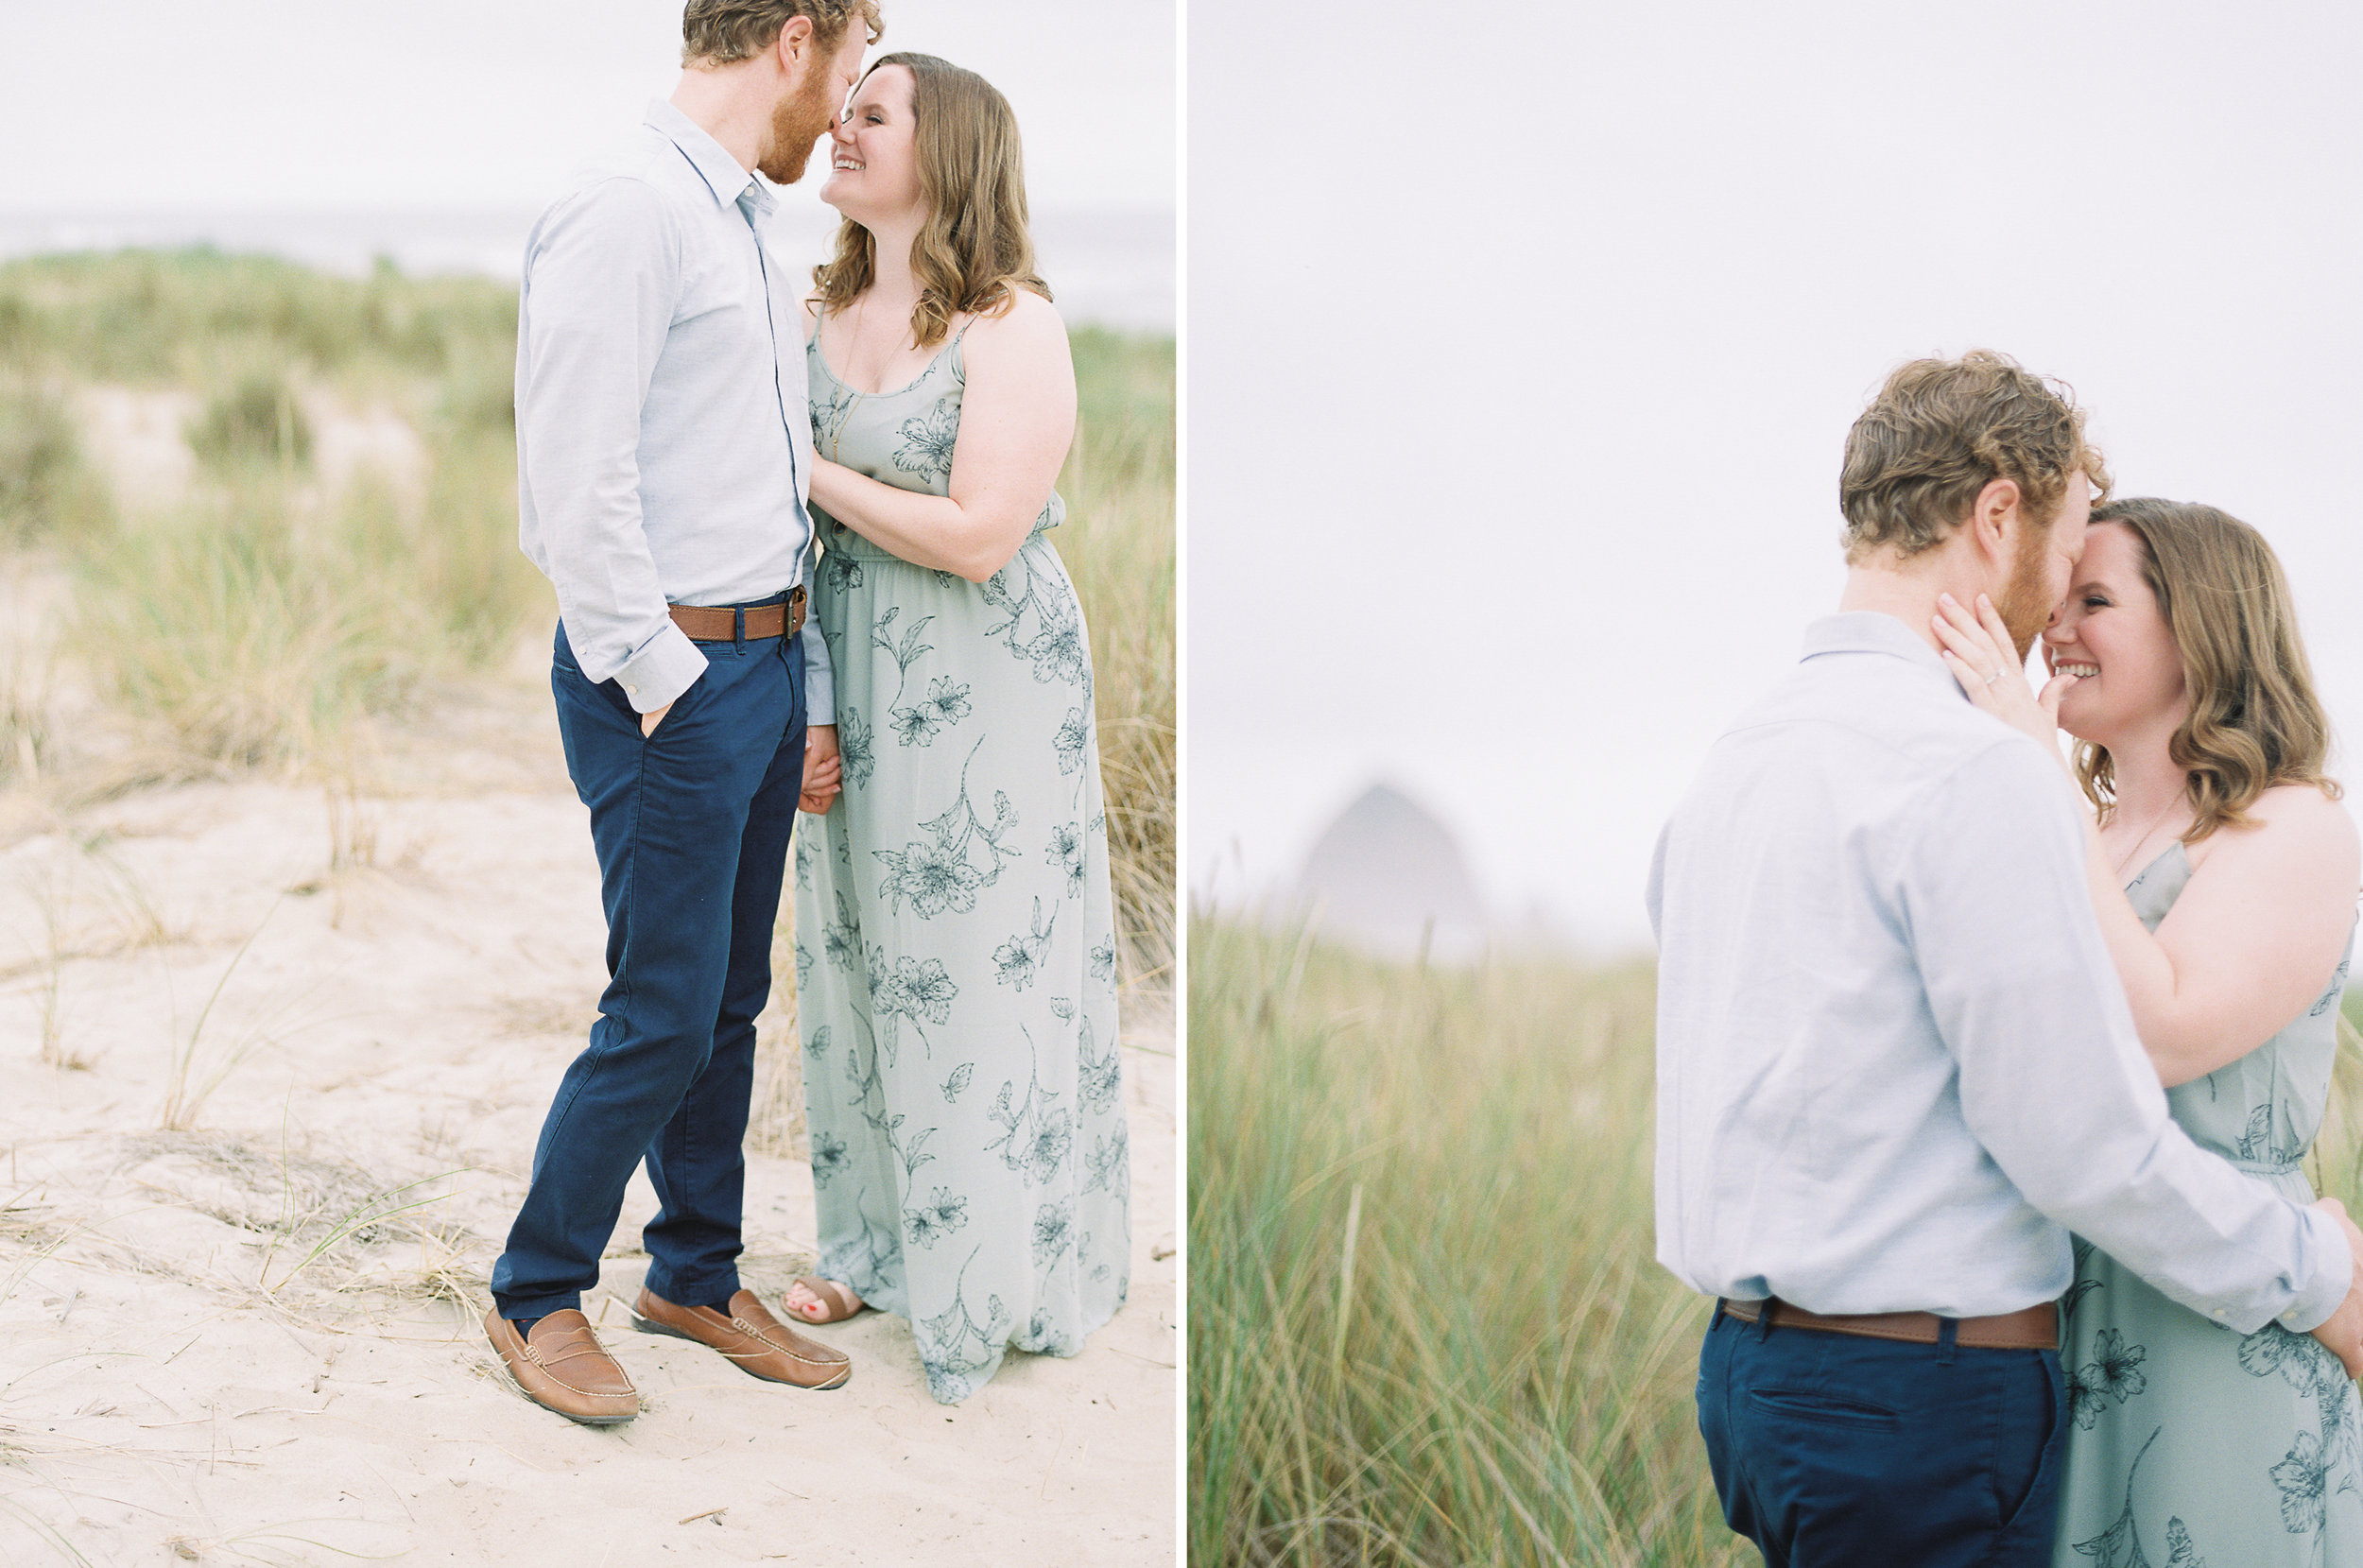 cannon-beach-oregon-engagement-session-1.jpg